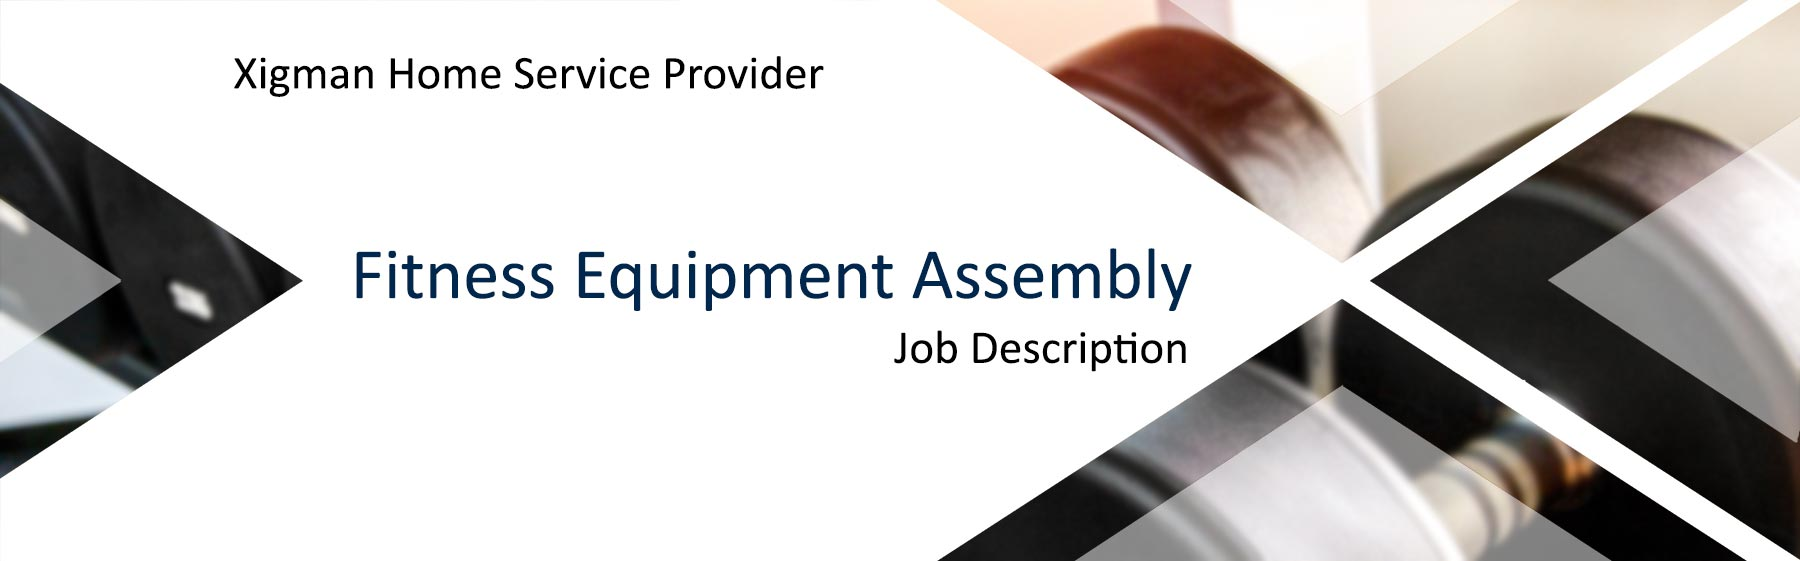 fitness-equipment-assembly-description-header